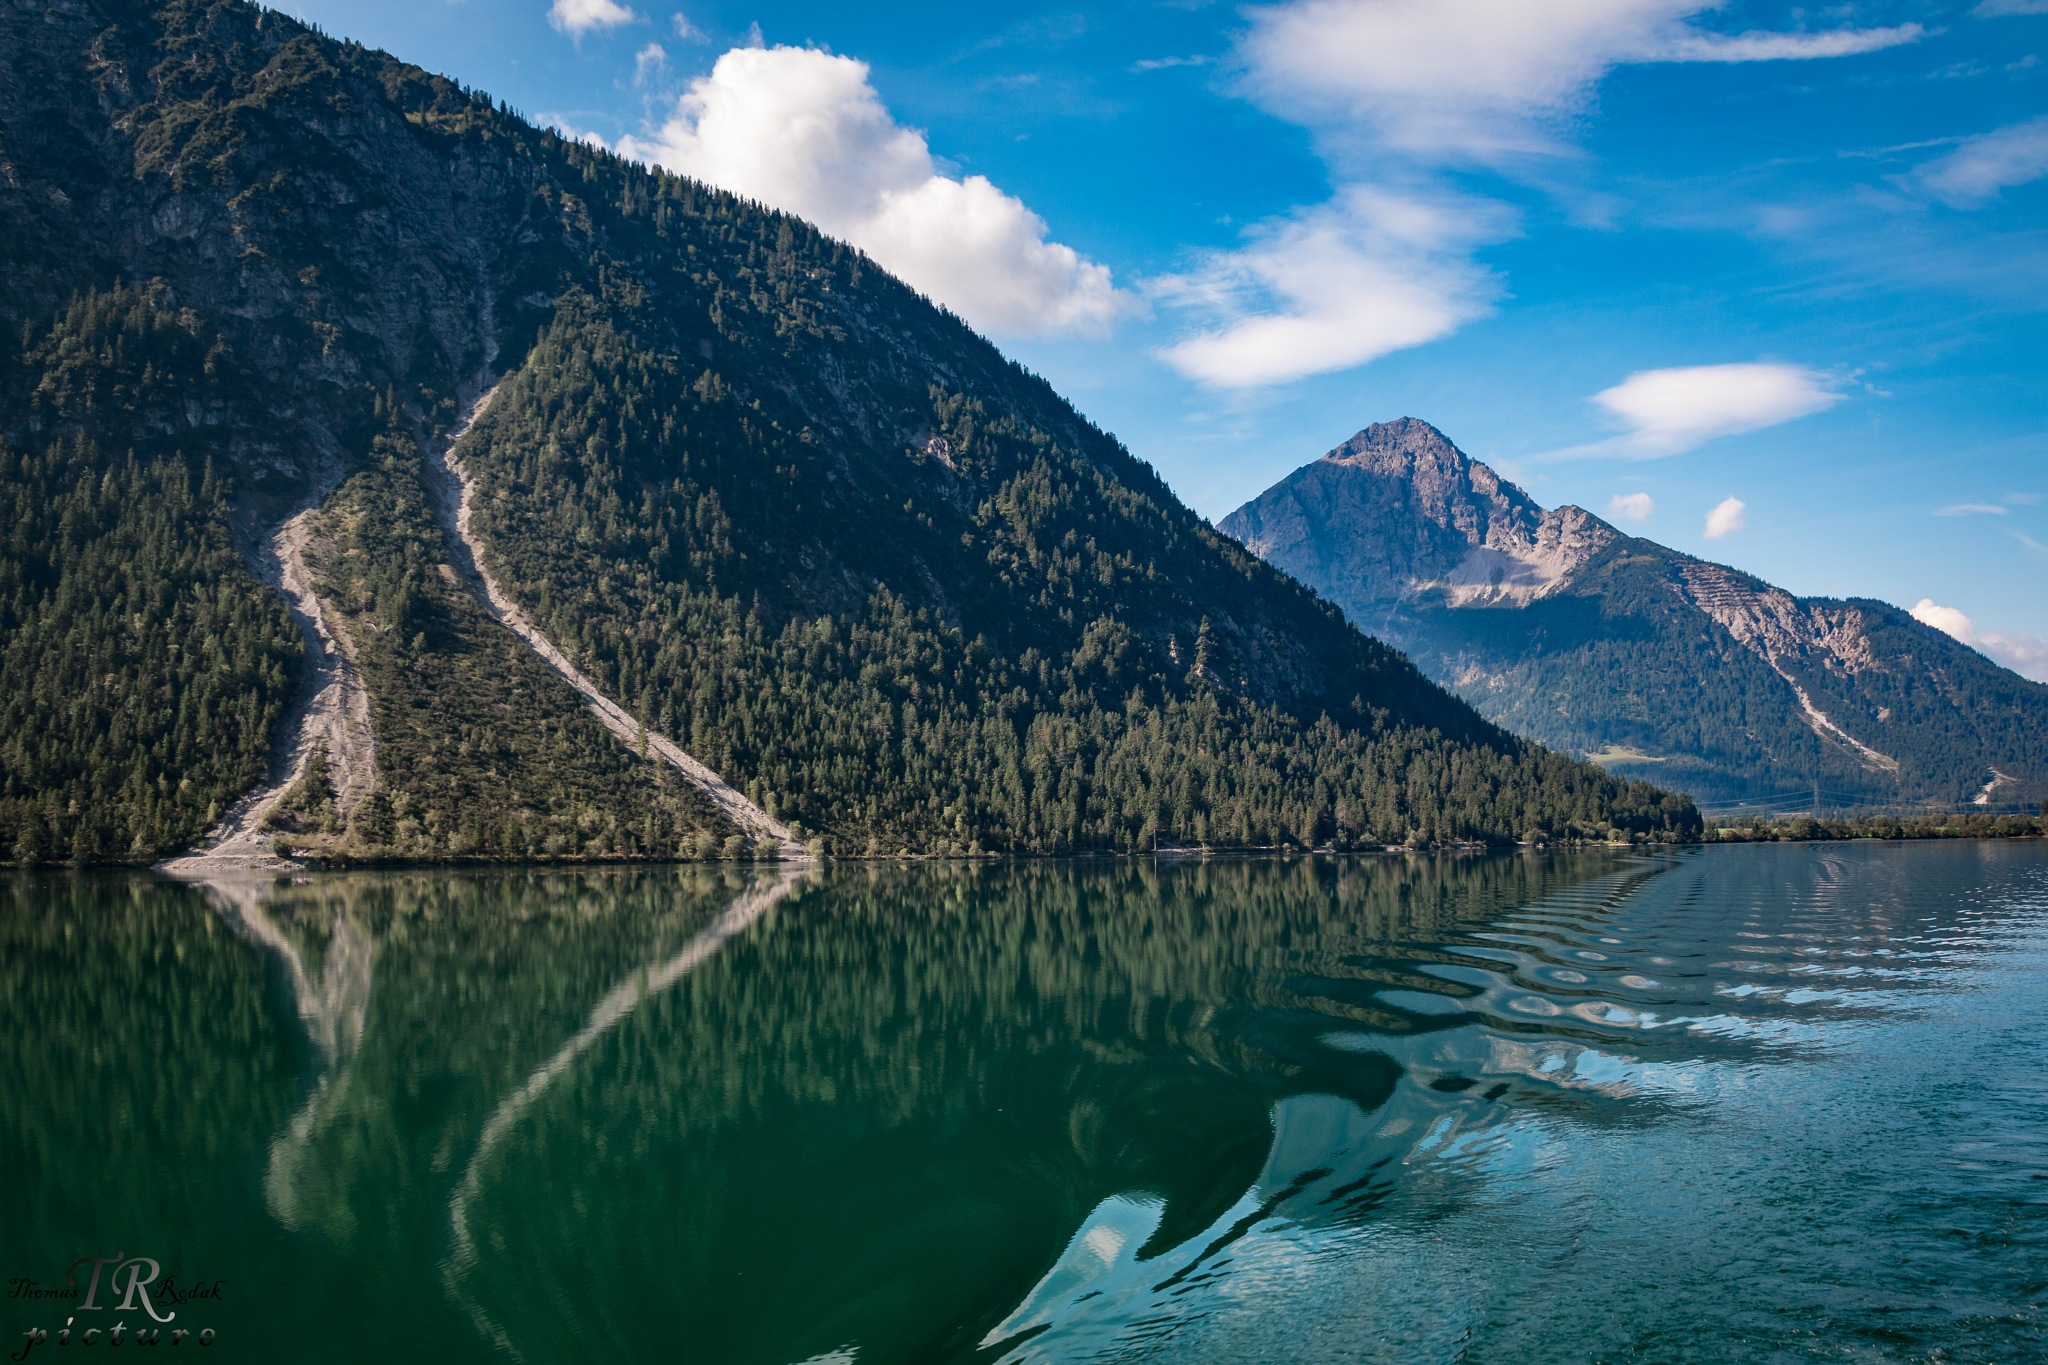 Plansee 2 by TRPicture